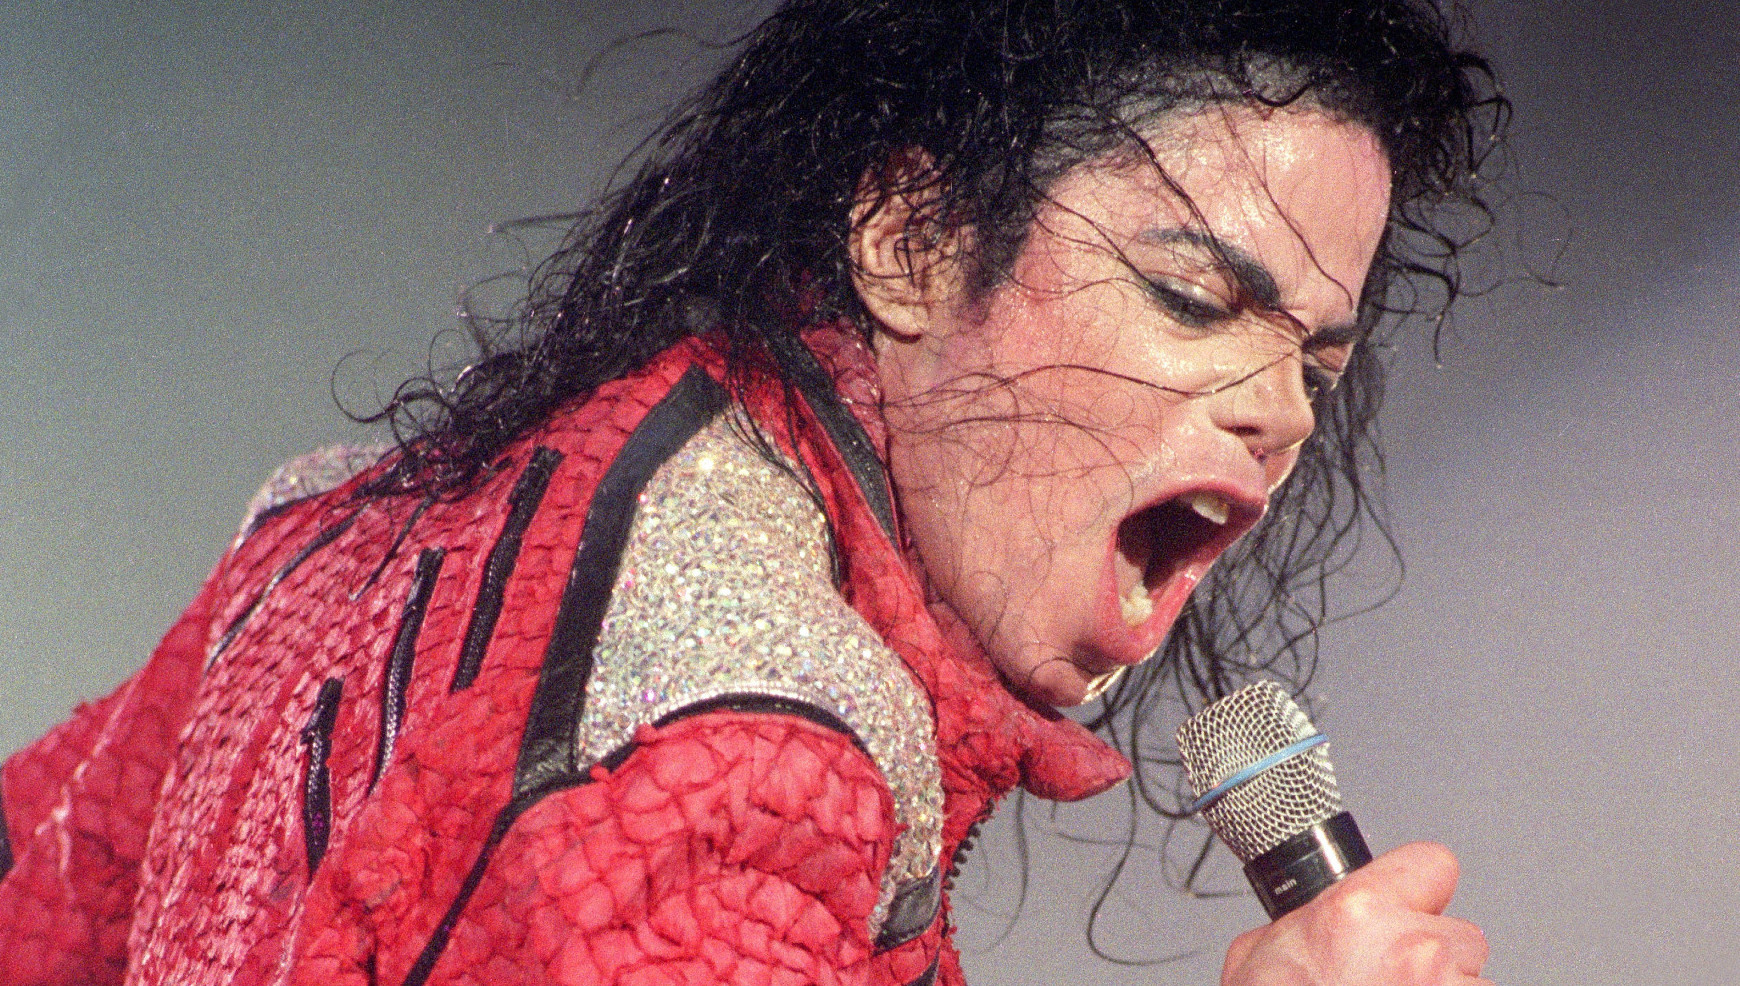 Michael Jackson performs live on stage, 1996. (Photo by Phil Dent/Redferns)